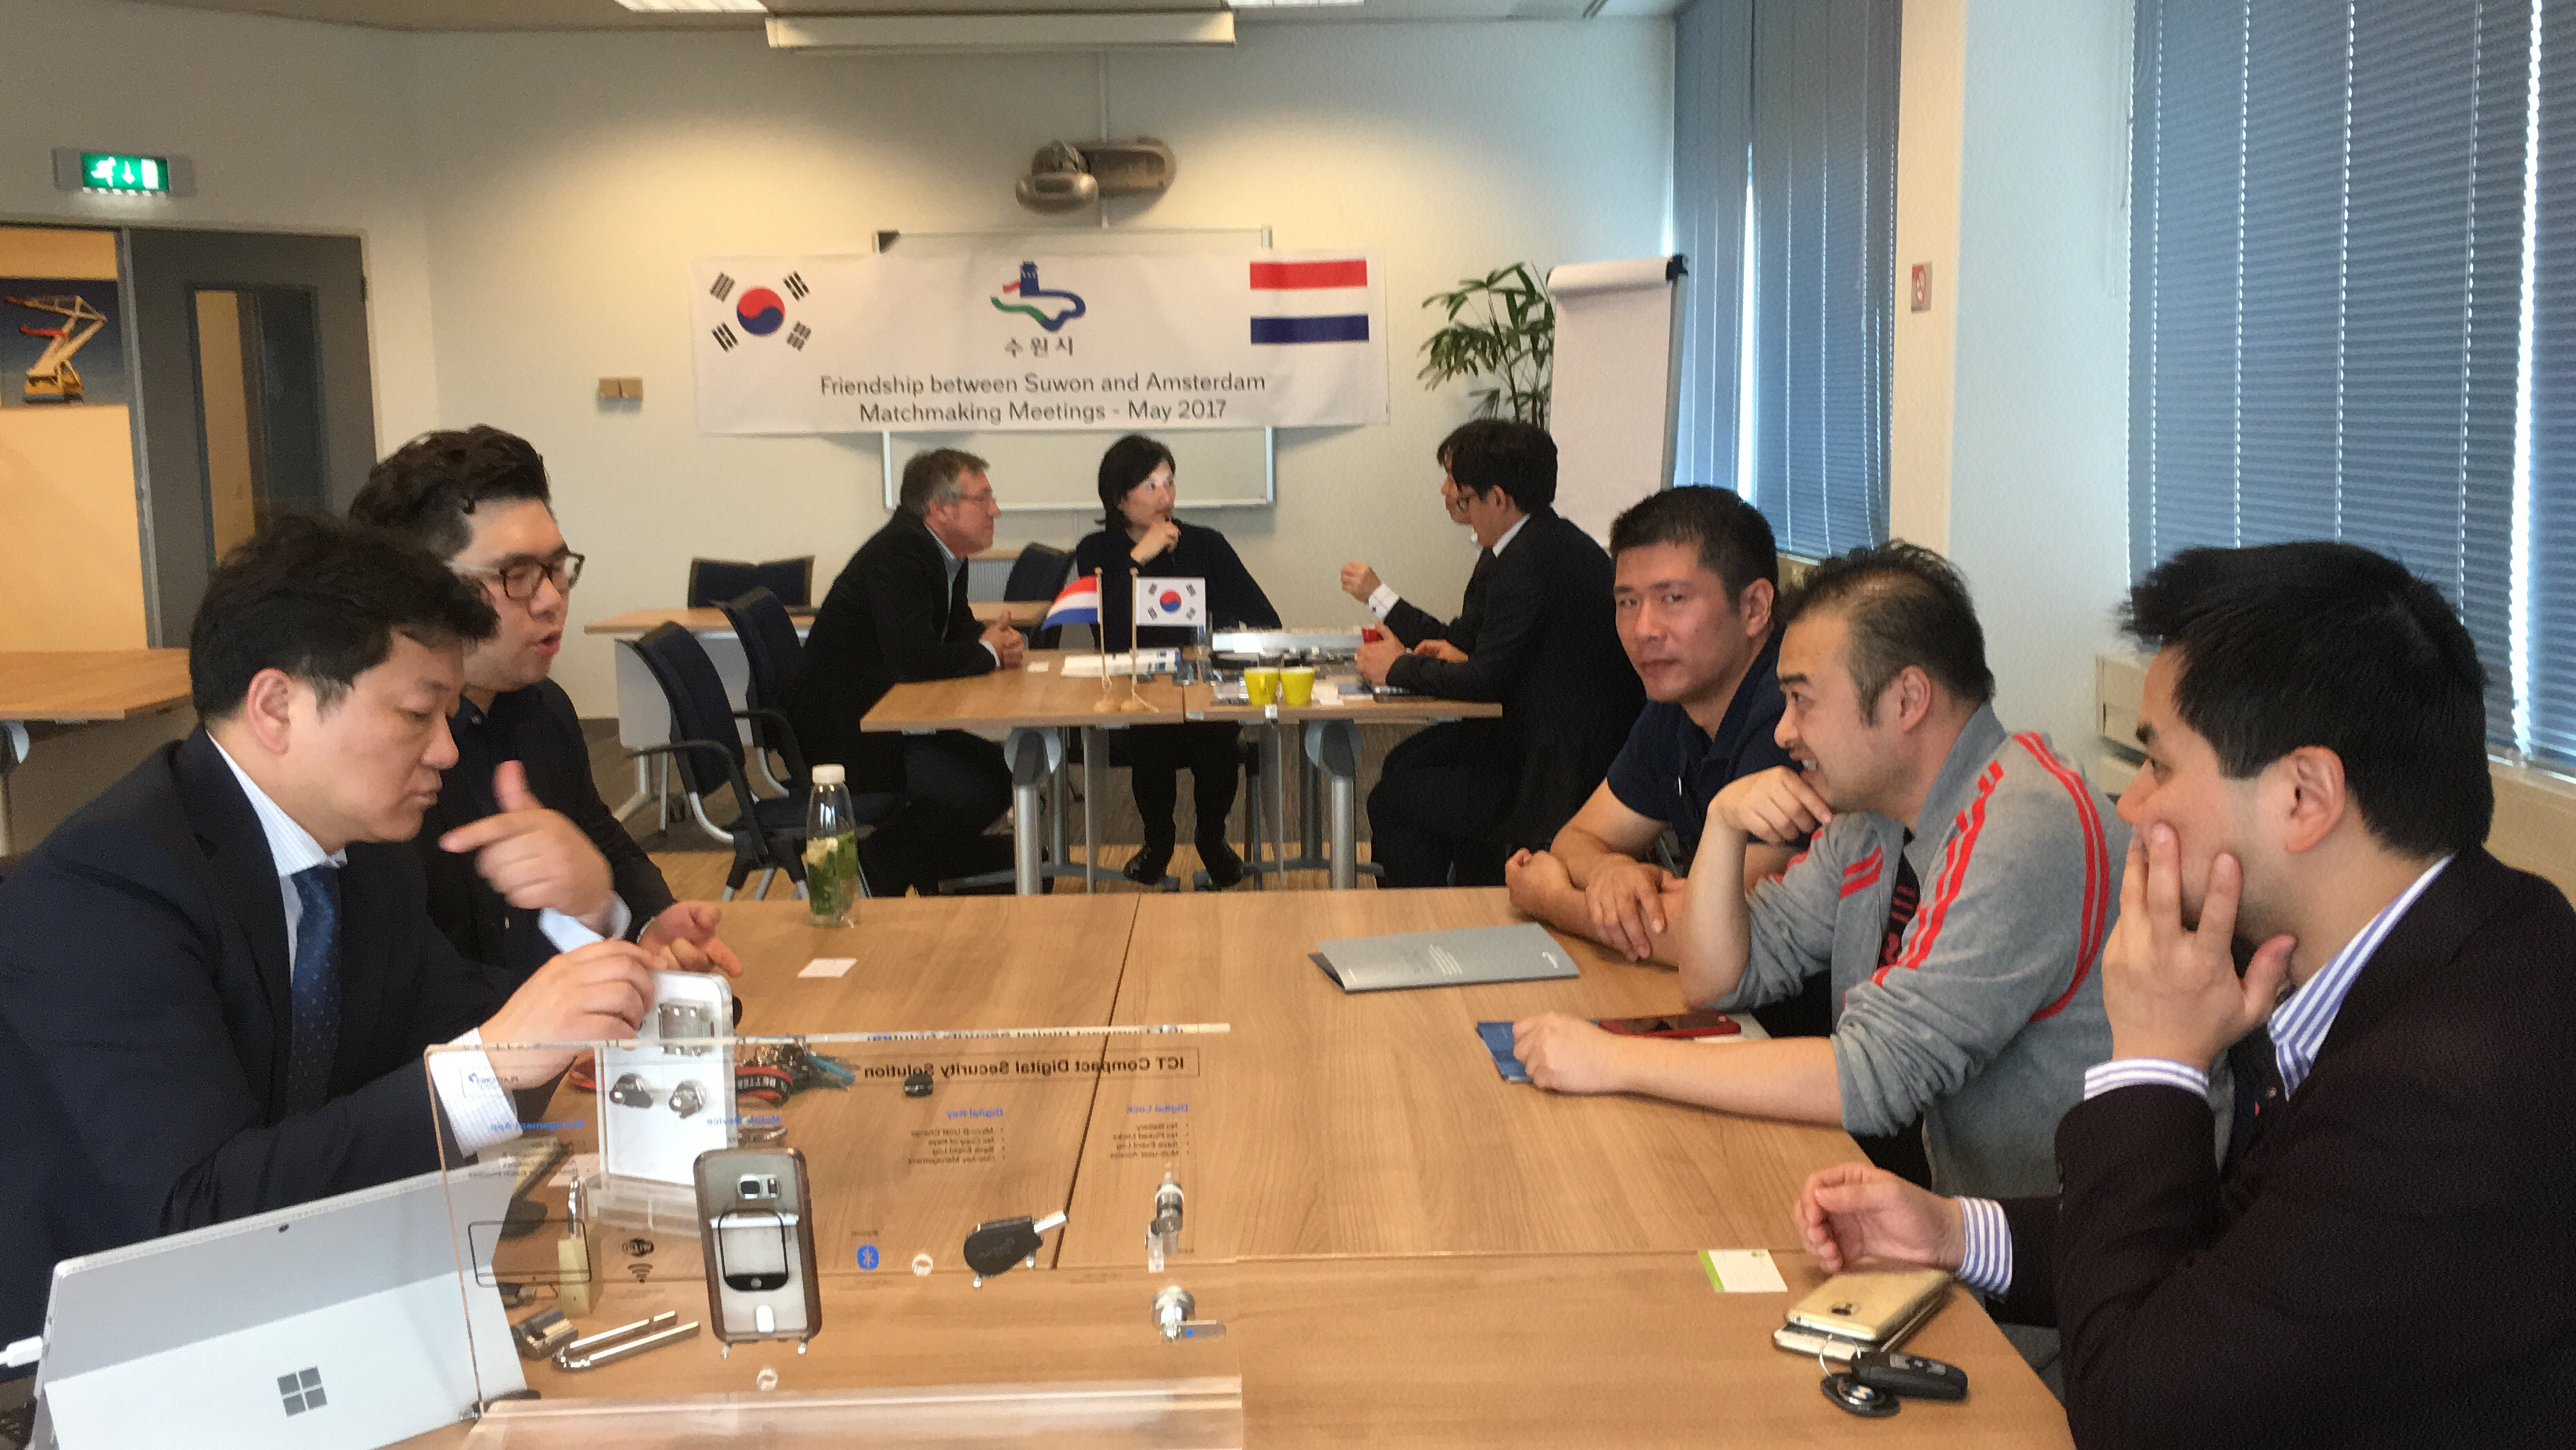 Business Matchmaking Meetings, May 2017